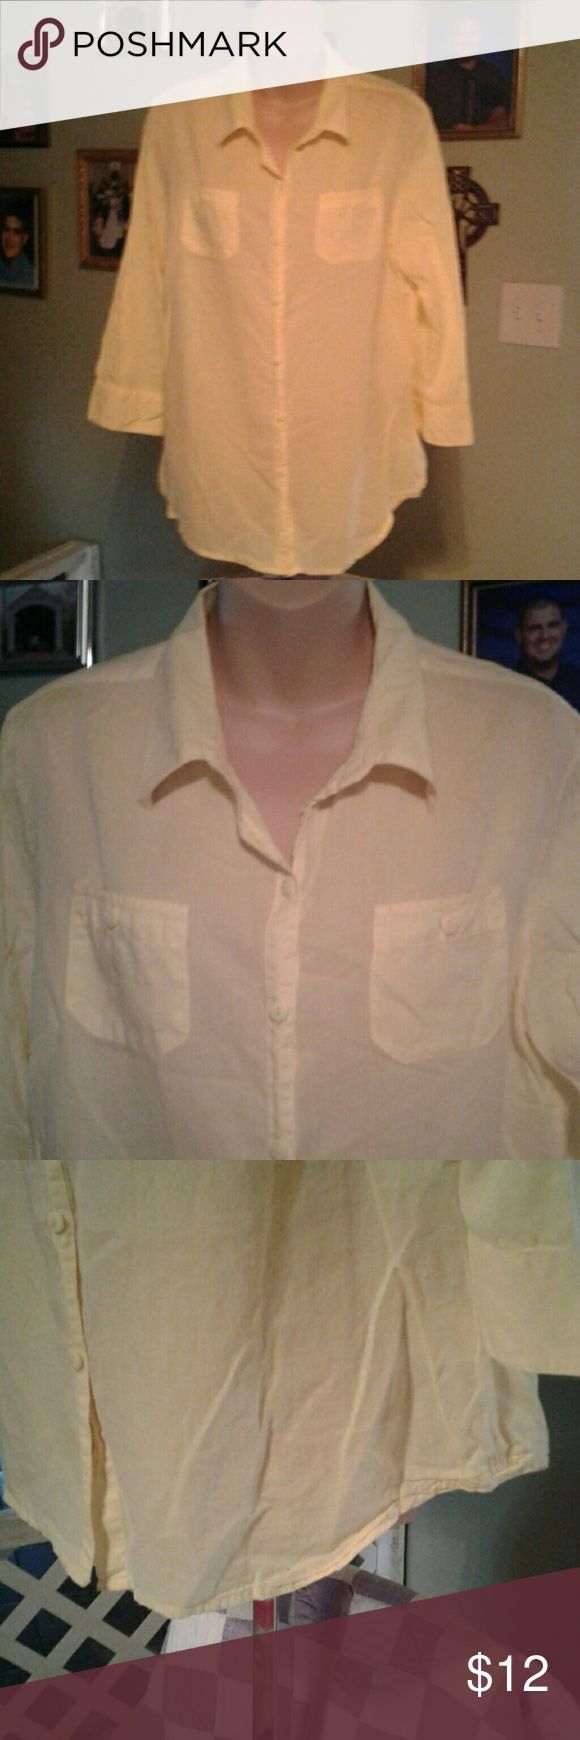 Canyon River Blues Pretty pale yellow sheer blouse that buttons down the front. Material is 100% cotton and the length is approximately 29 inches long. Material is 100% cotton and the length  approximately 29 inches long. Canyon River Blues Tops